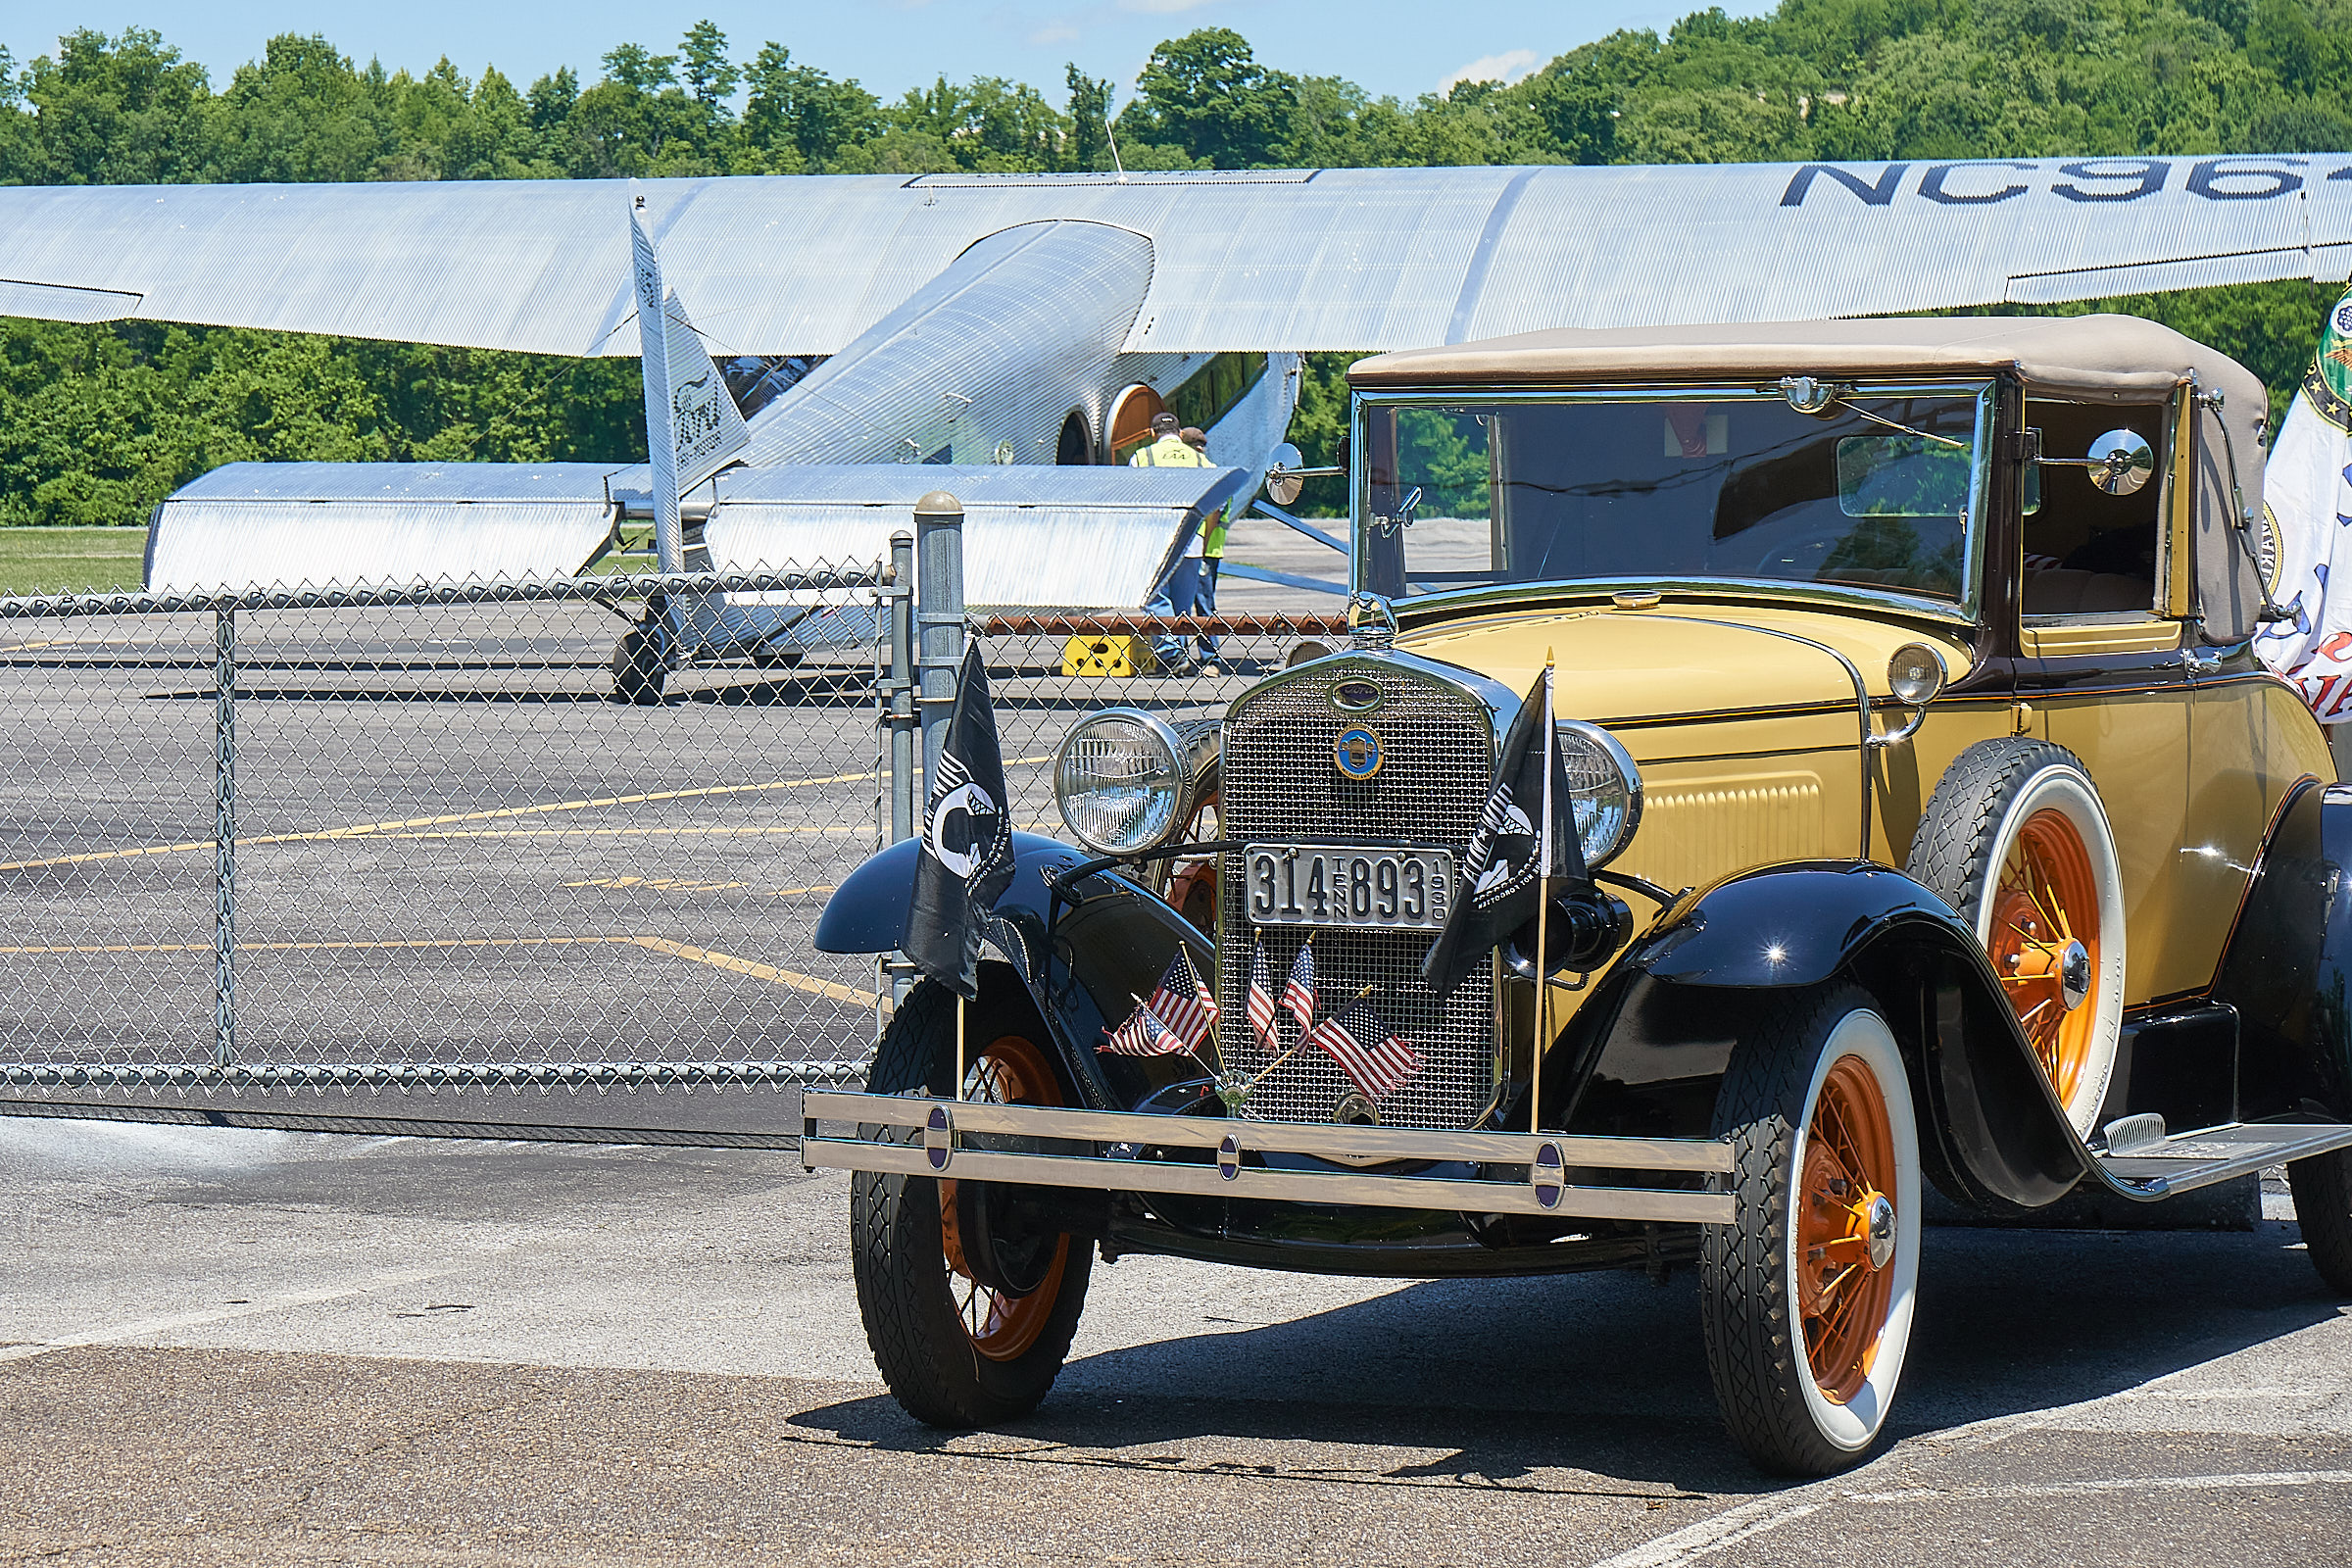 A club member car seen with the Ford Tri-motor airplane in the background